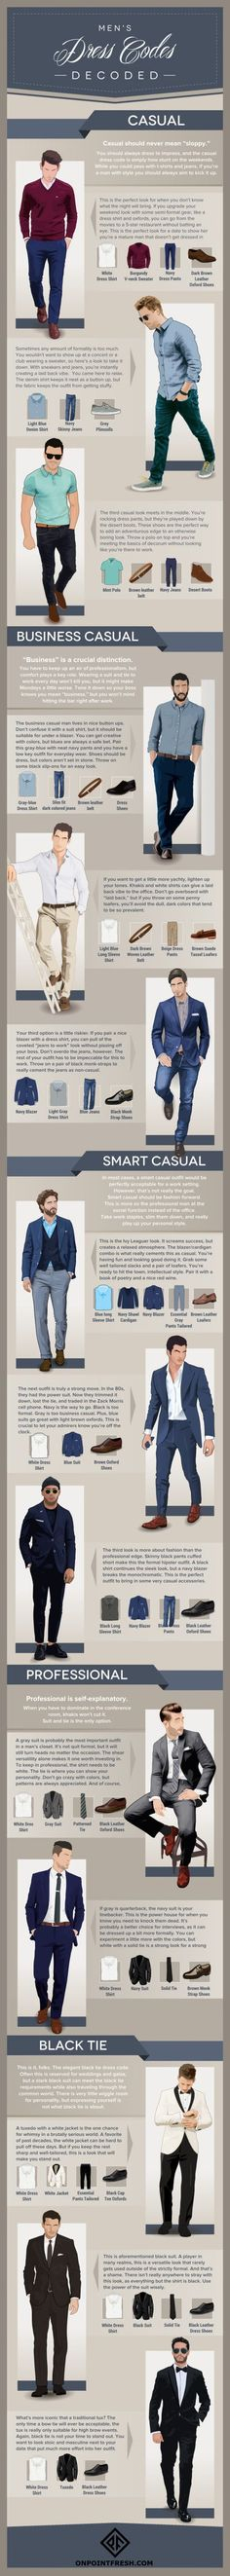 Business Casual For Men - Visual Guide-Business Casual For Men – Visual Guide Men& Dress Codes Infographic Mens fashion Infographic - Fashion Infographic, Business Casual Men, Business Suits, Smart Casual Men Work, Classy Casual, Classy Style, Mode Masculine, Men Style Tips, Mens Style Guide